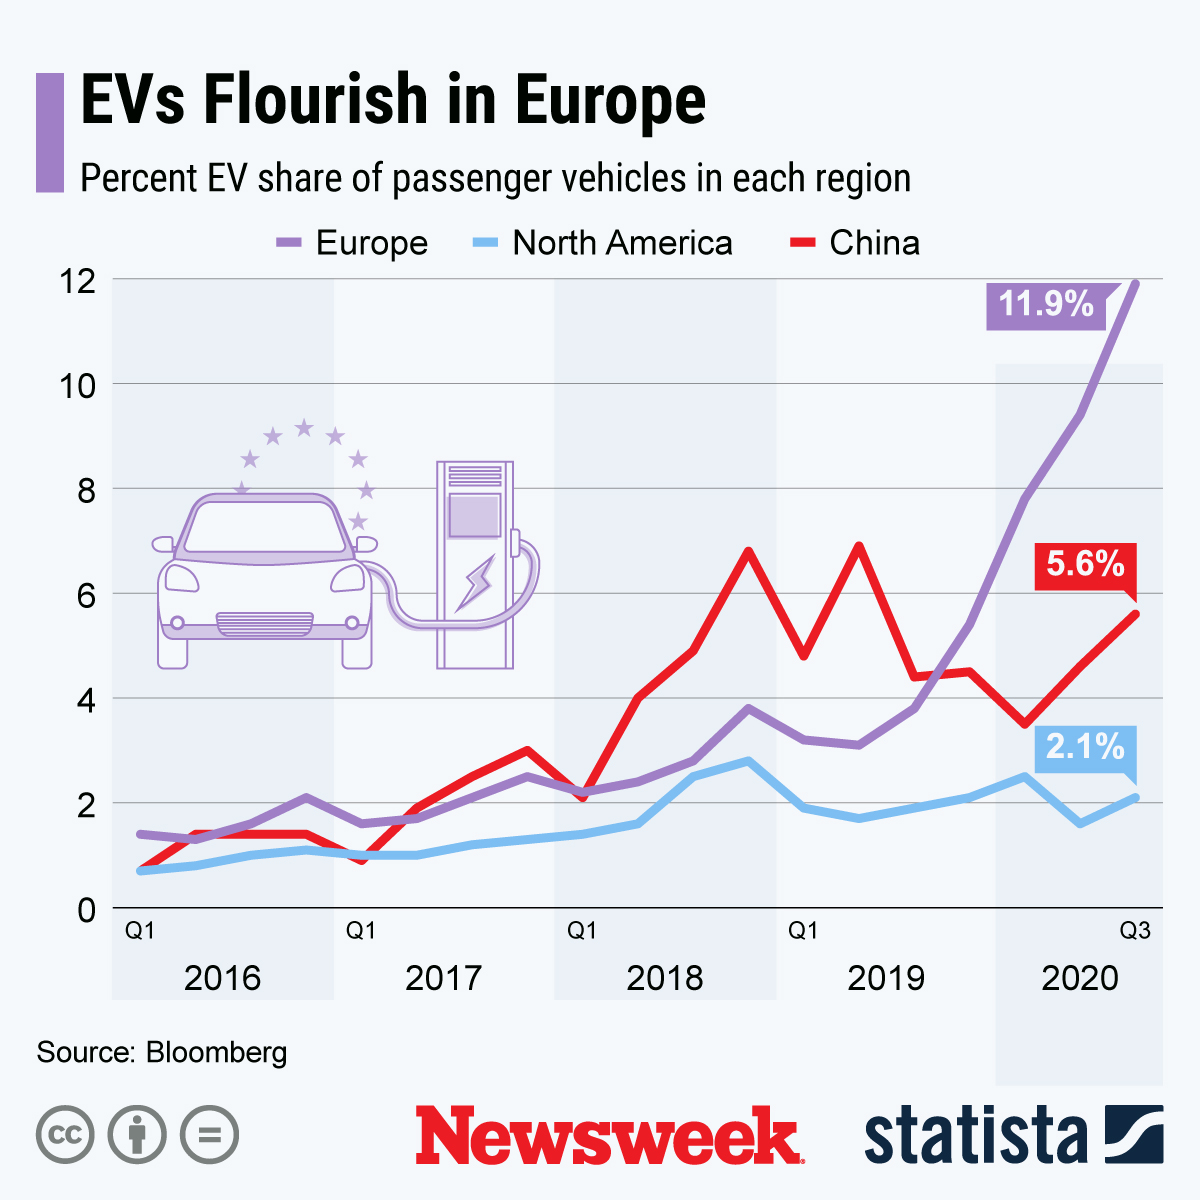 newsweek.com - Manuel Moerbach - Europe leads the way as electric vehicle revolution is underway around the world